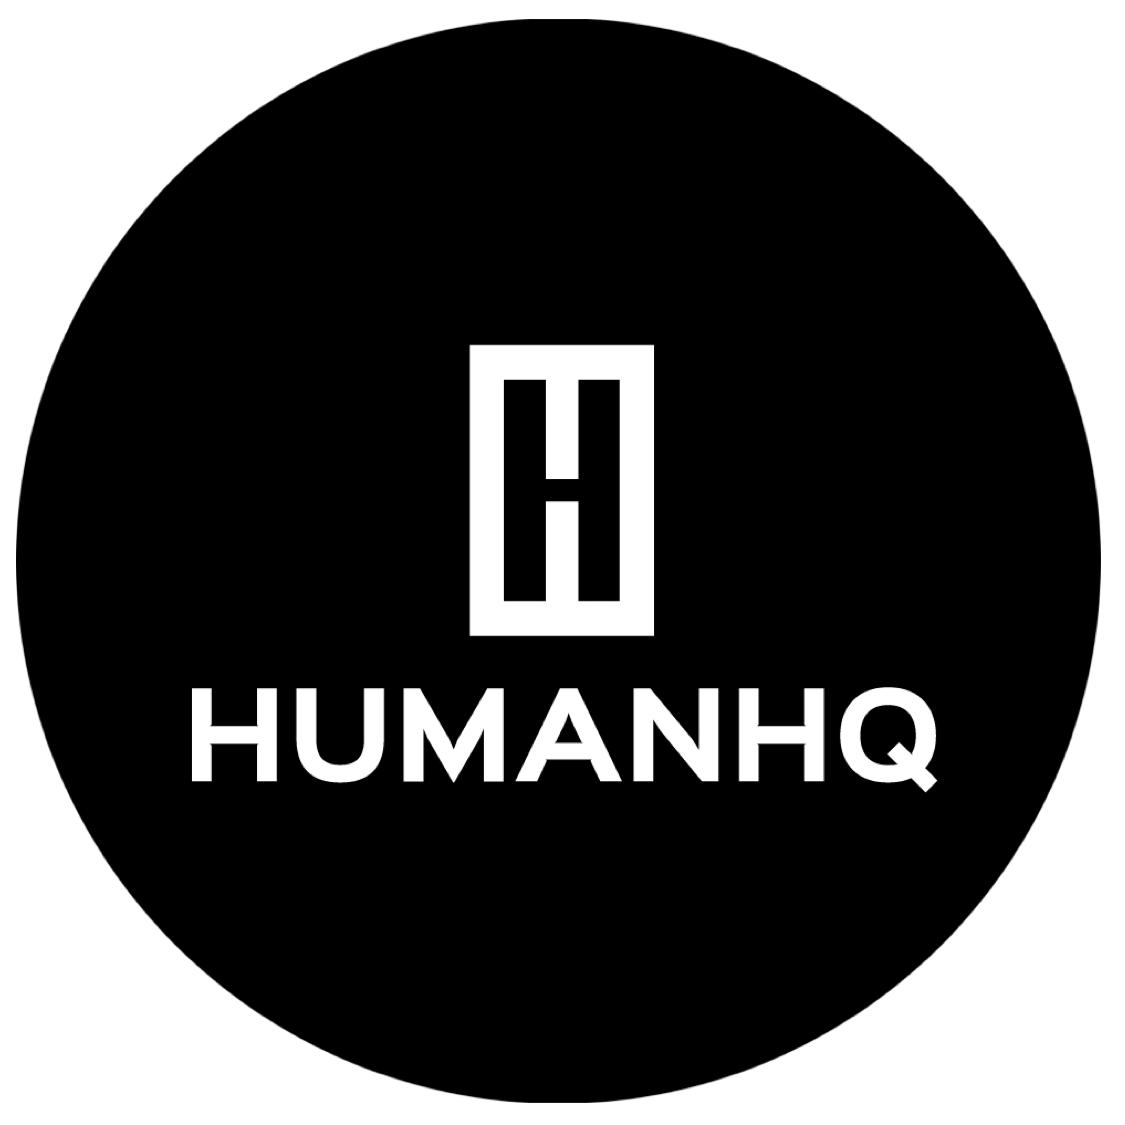 Human HQ houston small group personal development meet up young professionals new to houston vulnerability growth mindset